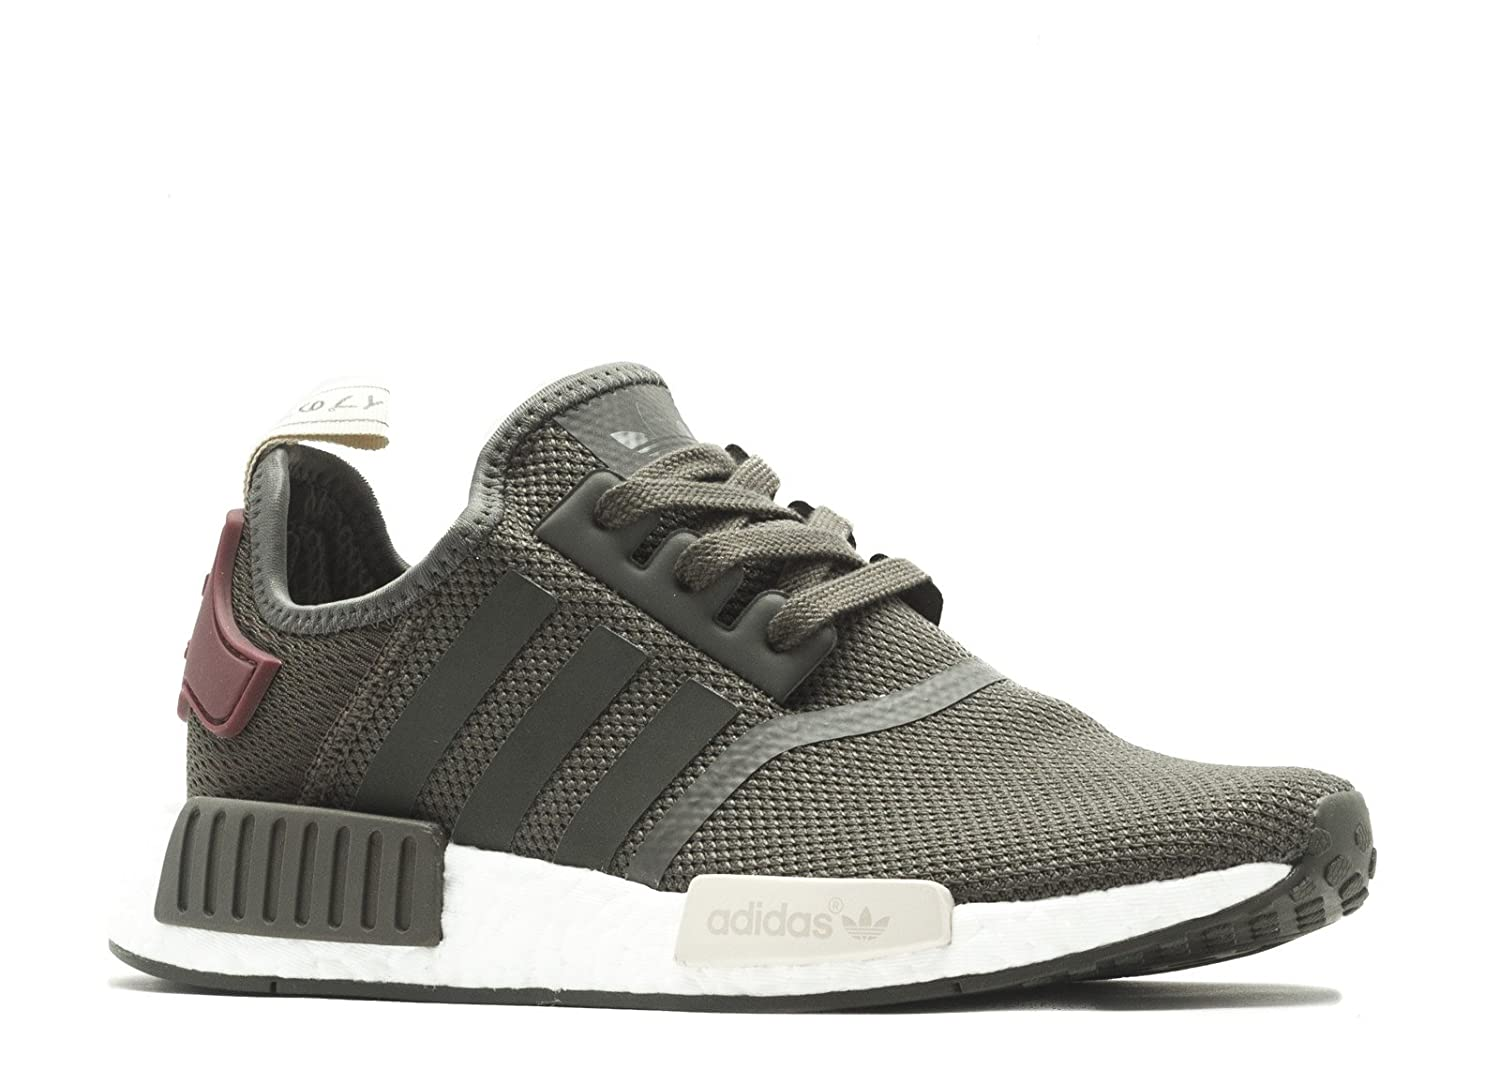 Utility Green Maroon Adidas Originals Men's Primeknit NMD_R1 Running shoes (Black)